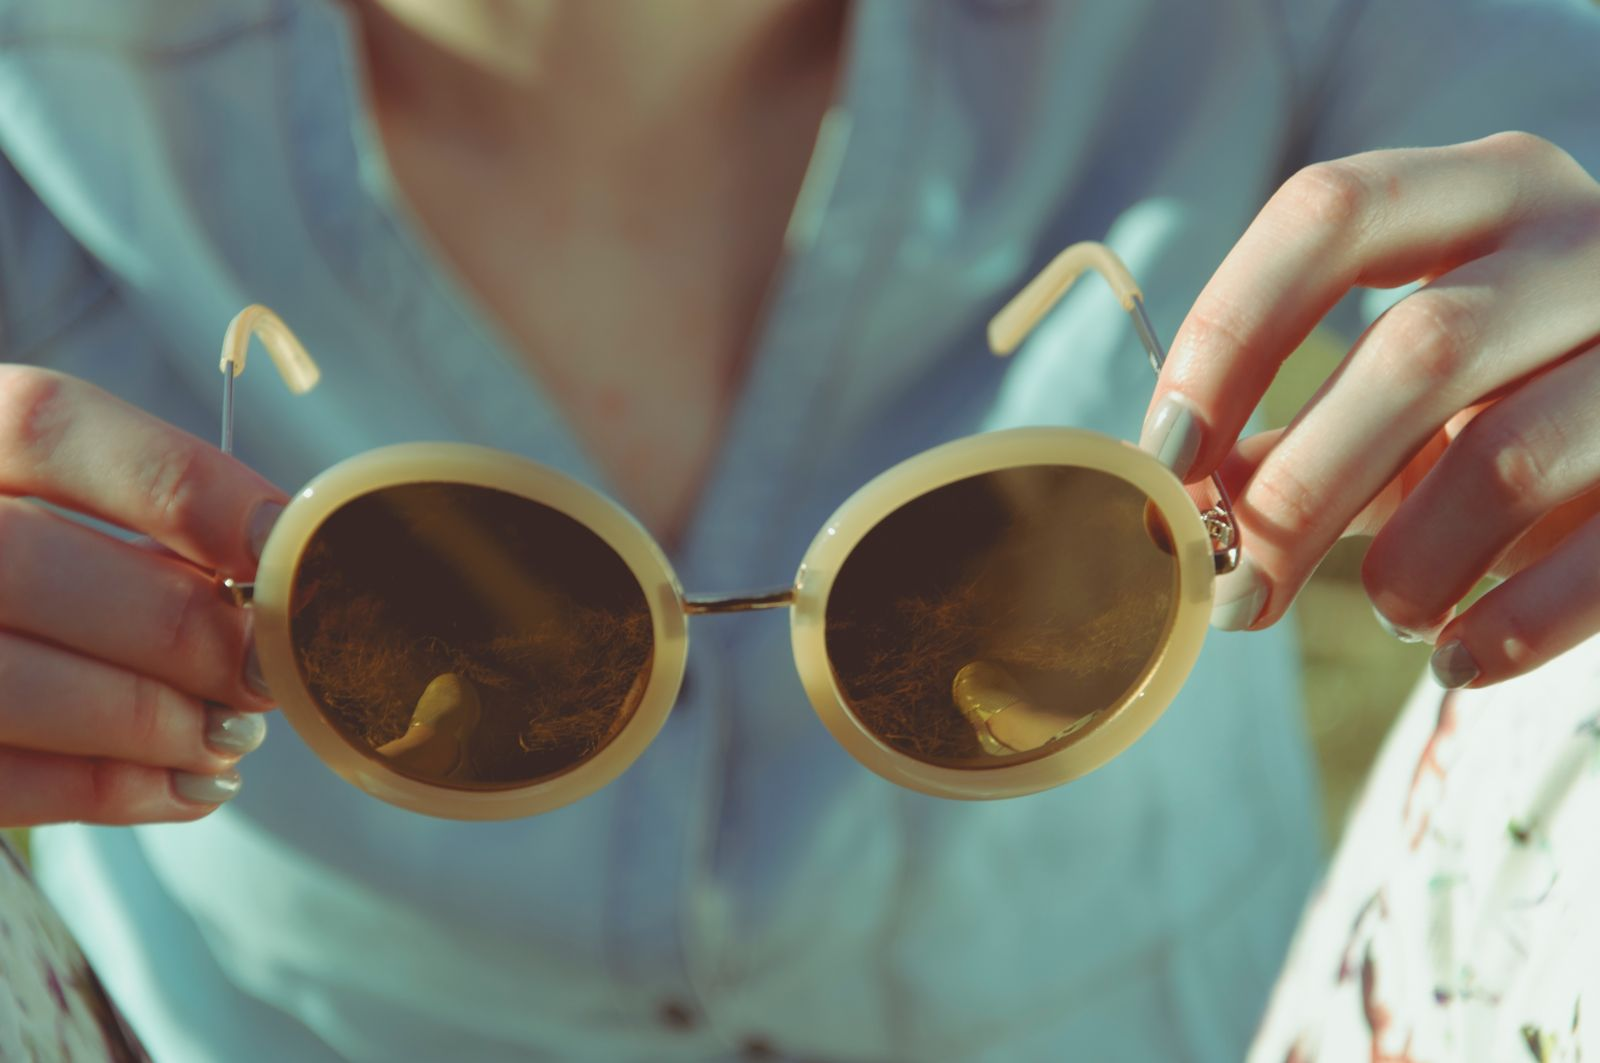 Woman holding sunglasses image